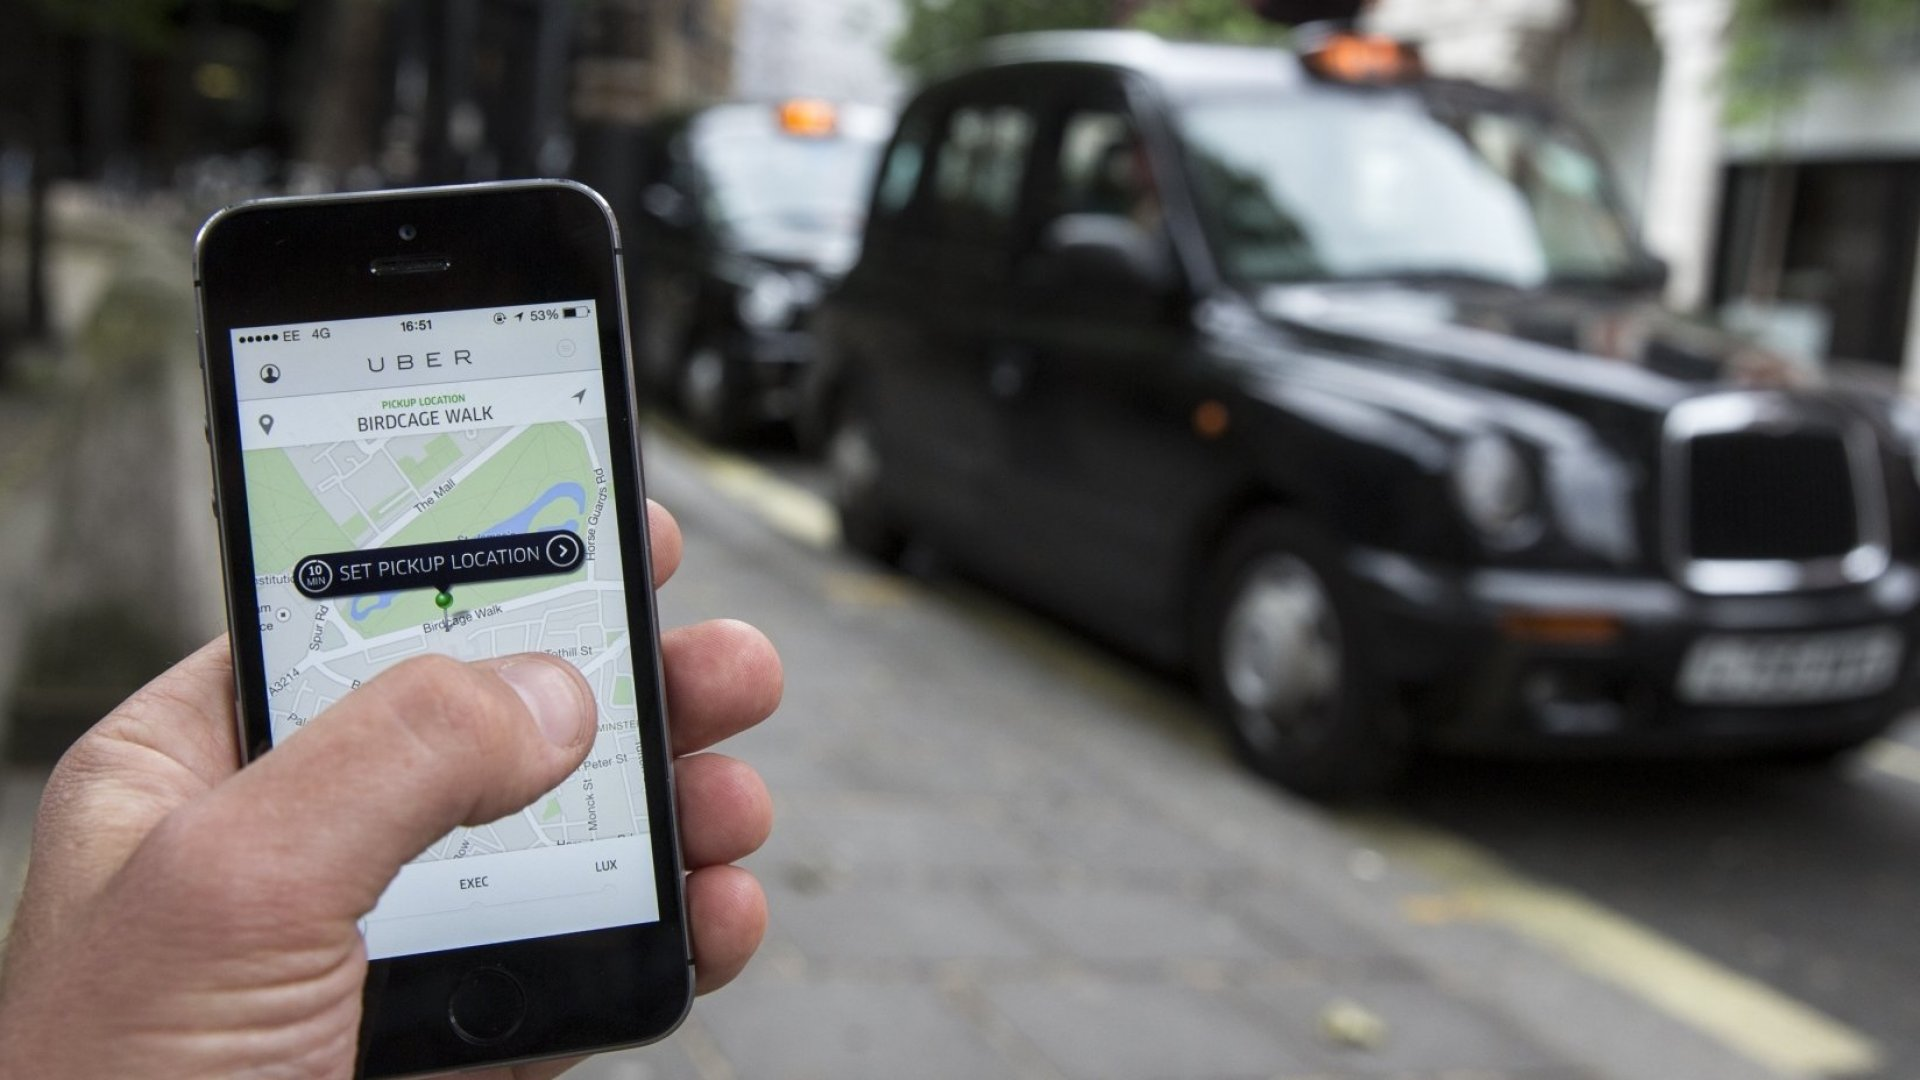 Uber Is a Taxi Company, Not a Tech Business Says EU Top Court